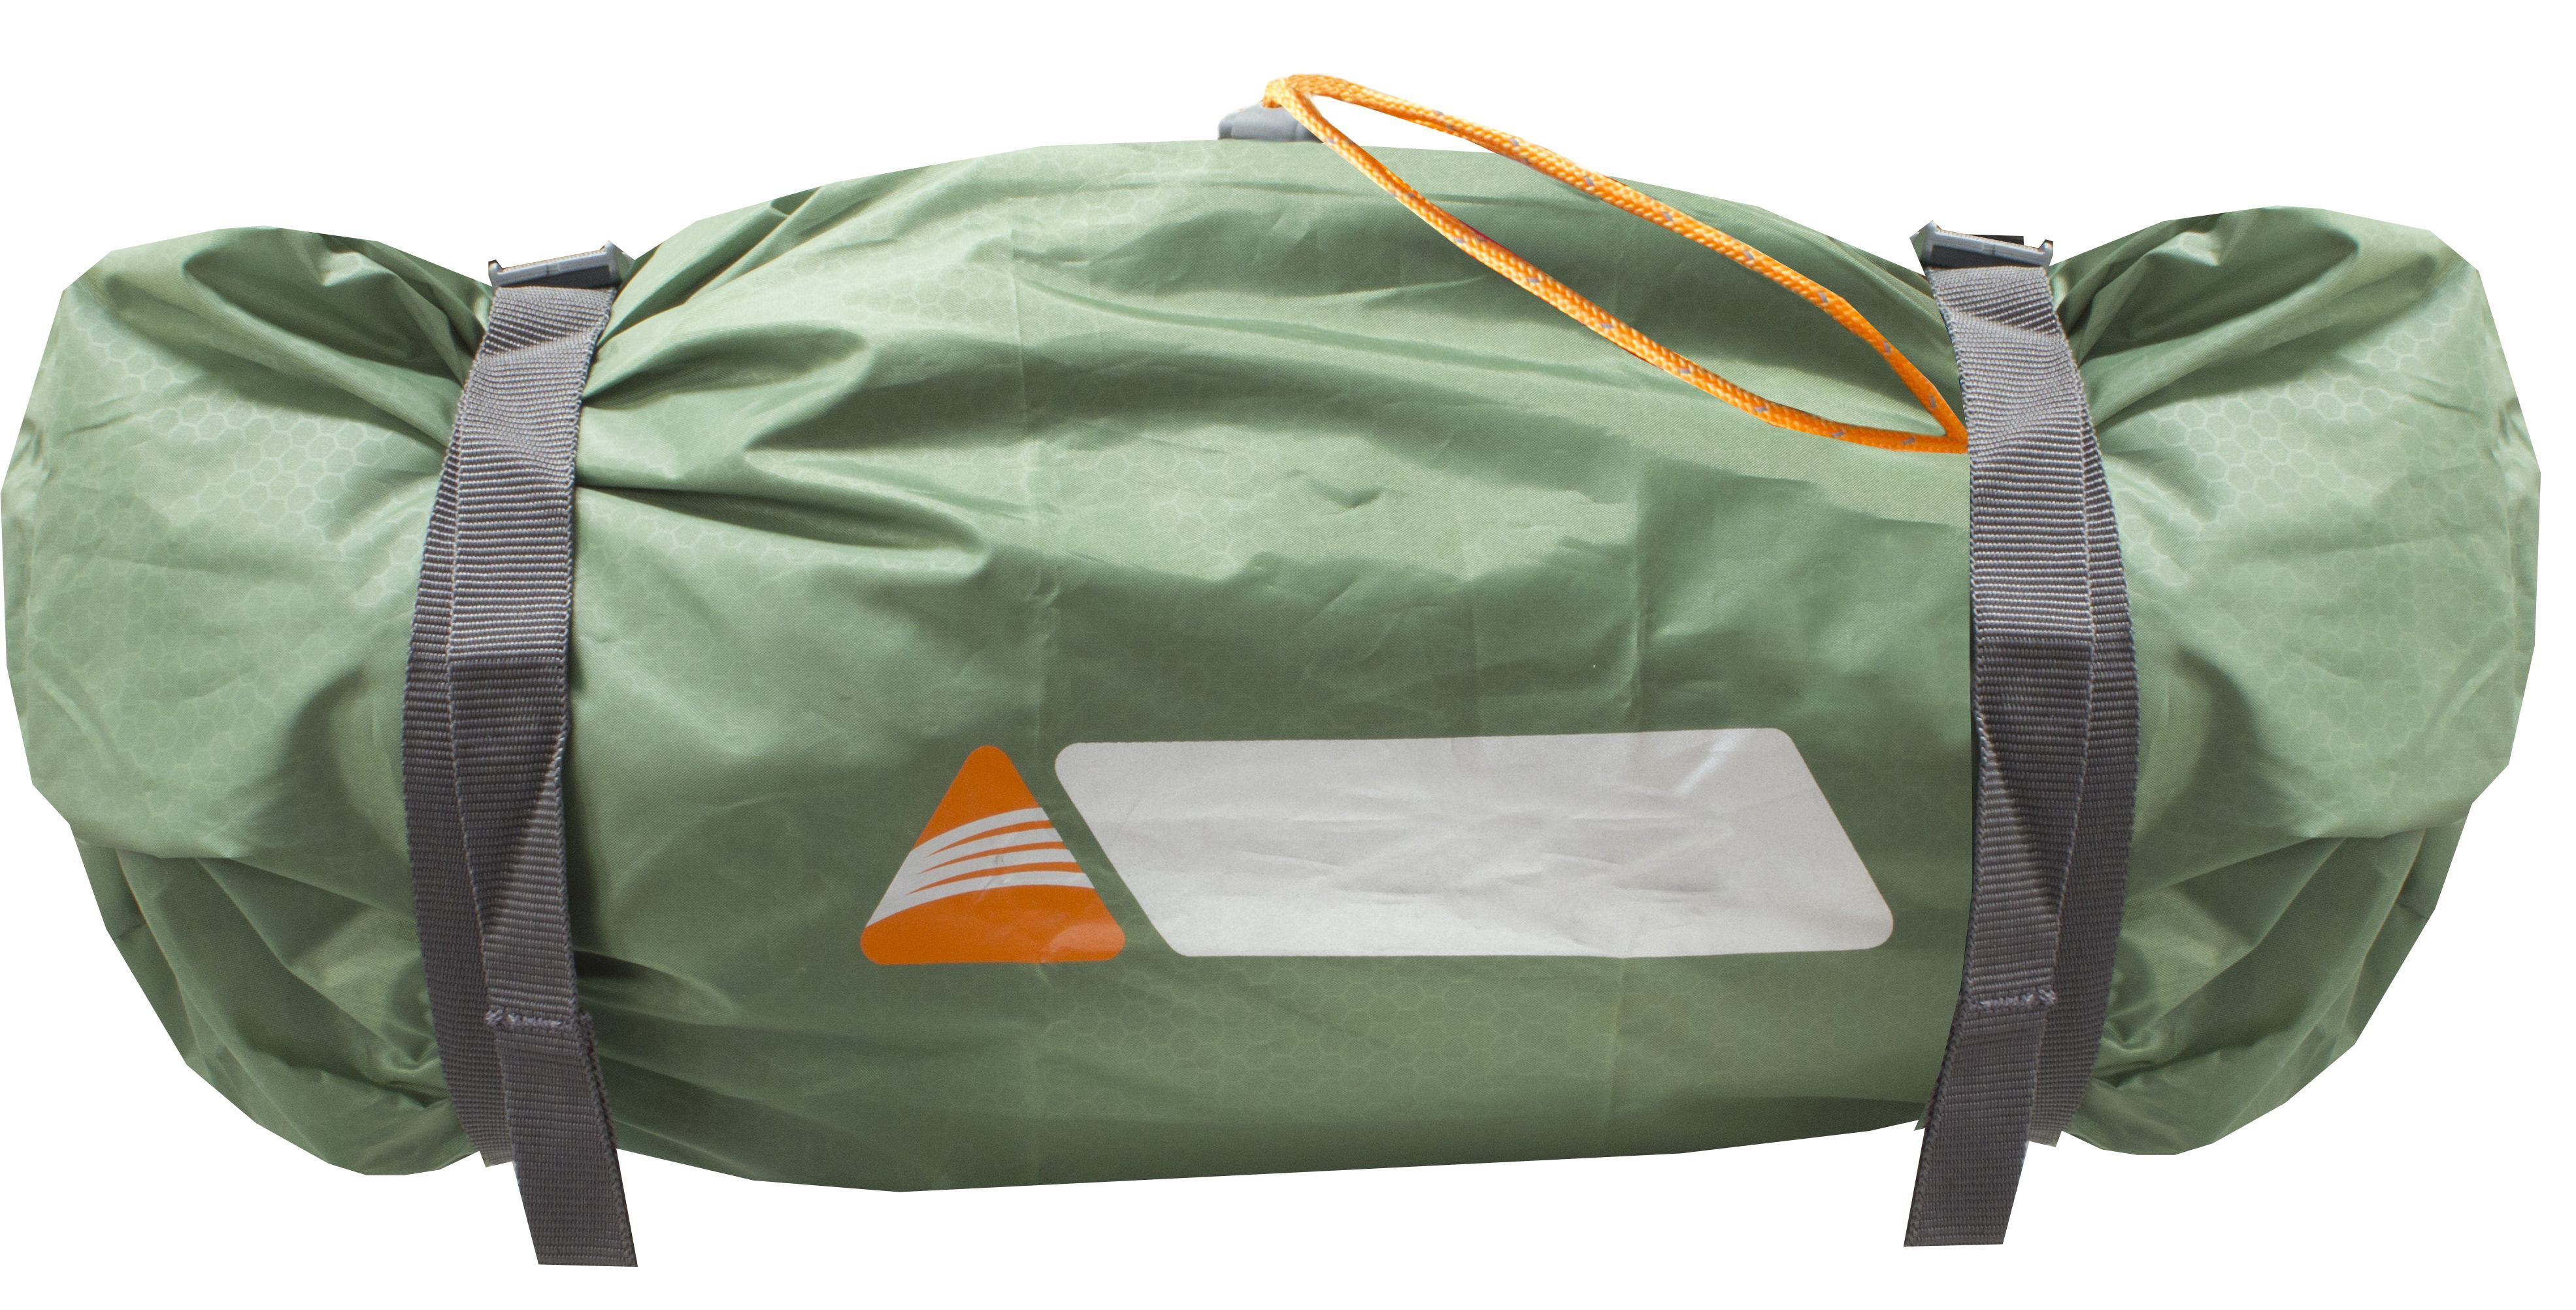 Vango Fastpack Replacement Tent Bag Small